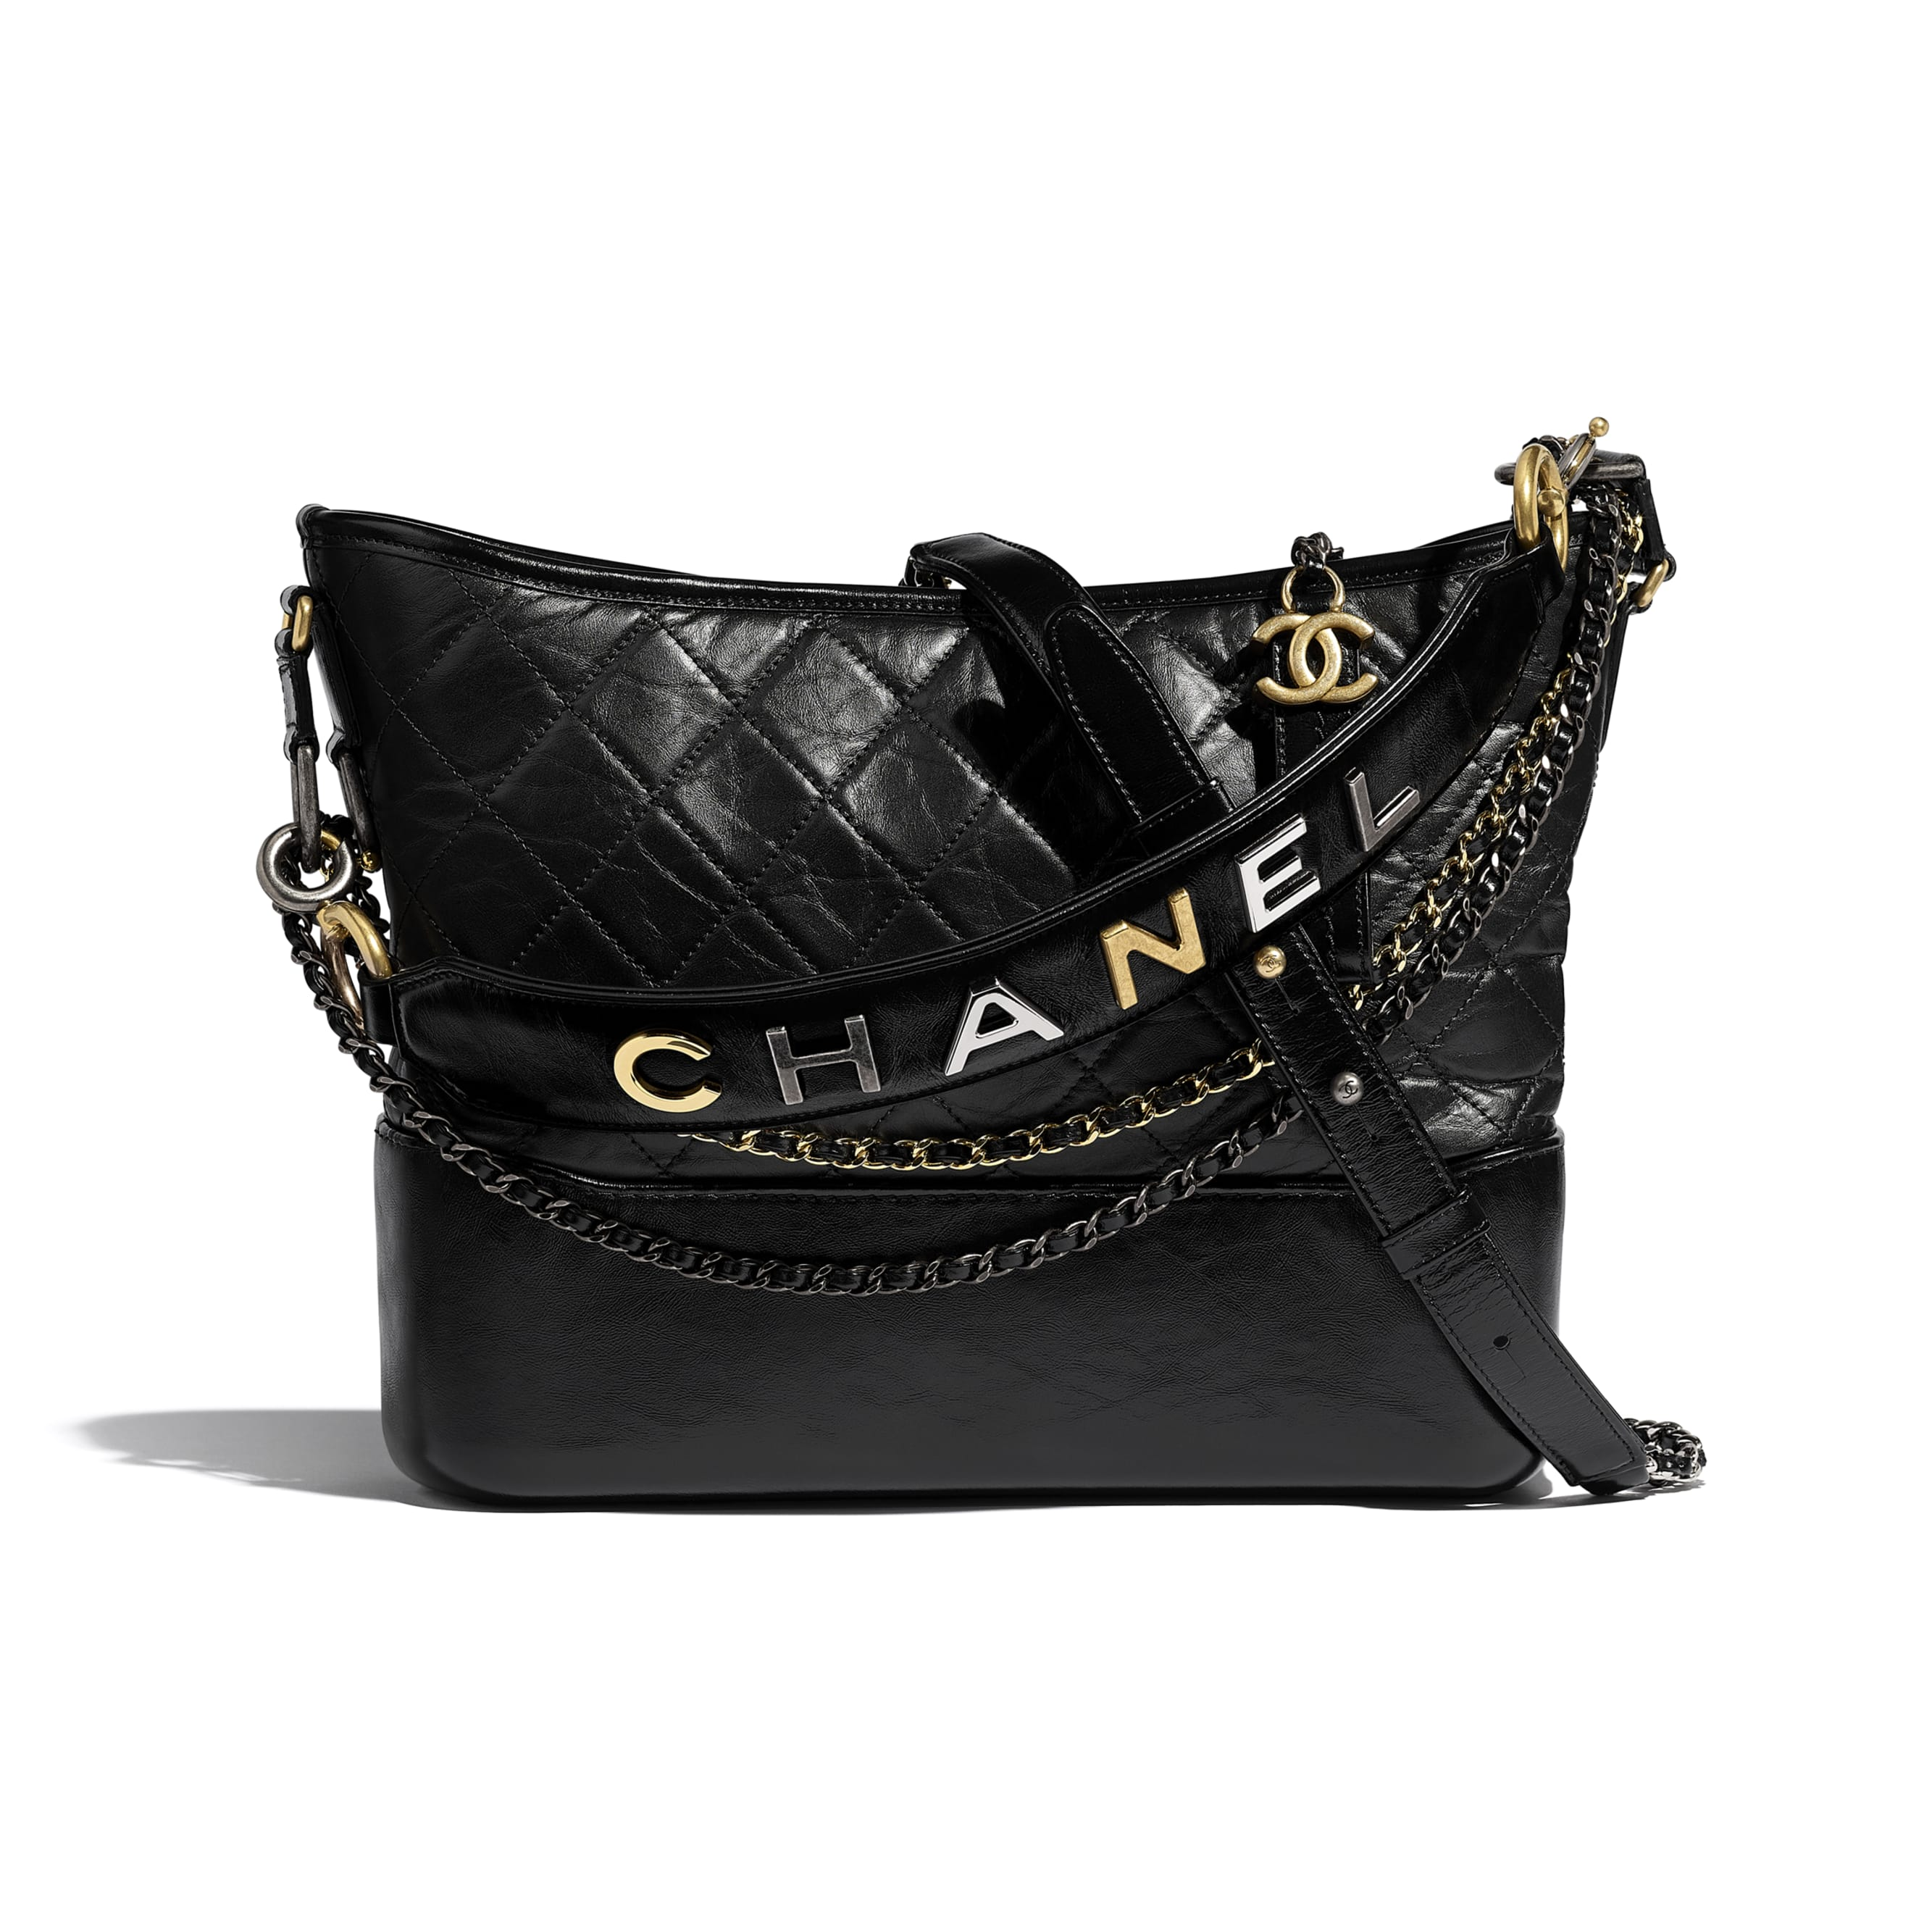 CHANEL'S GABRIELLE Large Hobo Bag - Black - Aged Calfskin, Smooth Calfskin, Gold-Tone & Silver-Tone Metal - Default view - see standard sized version